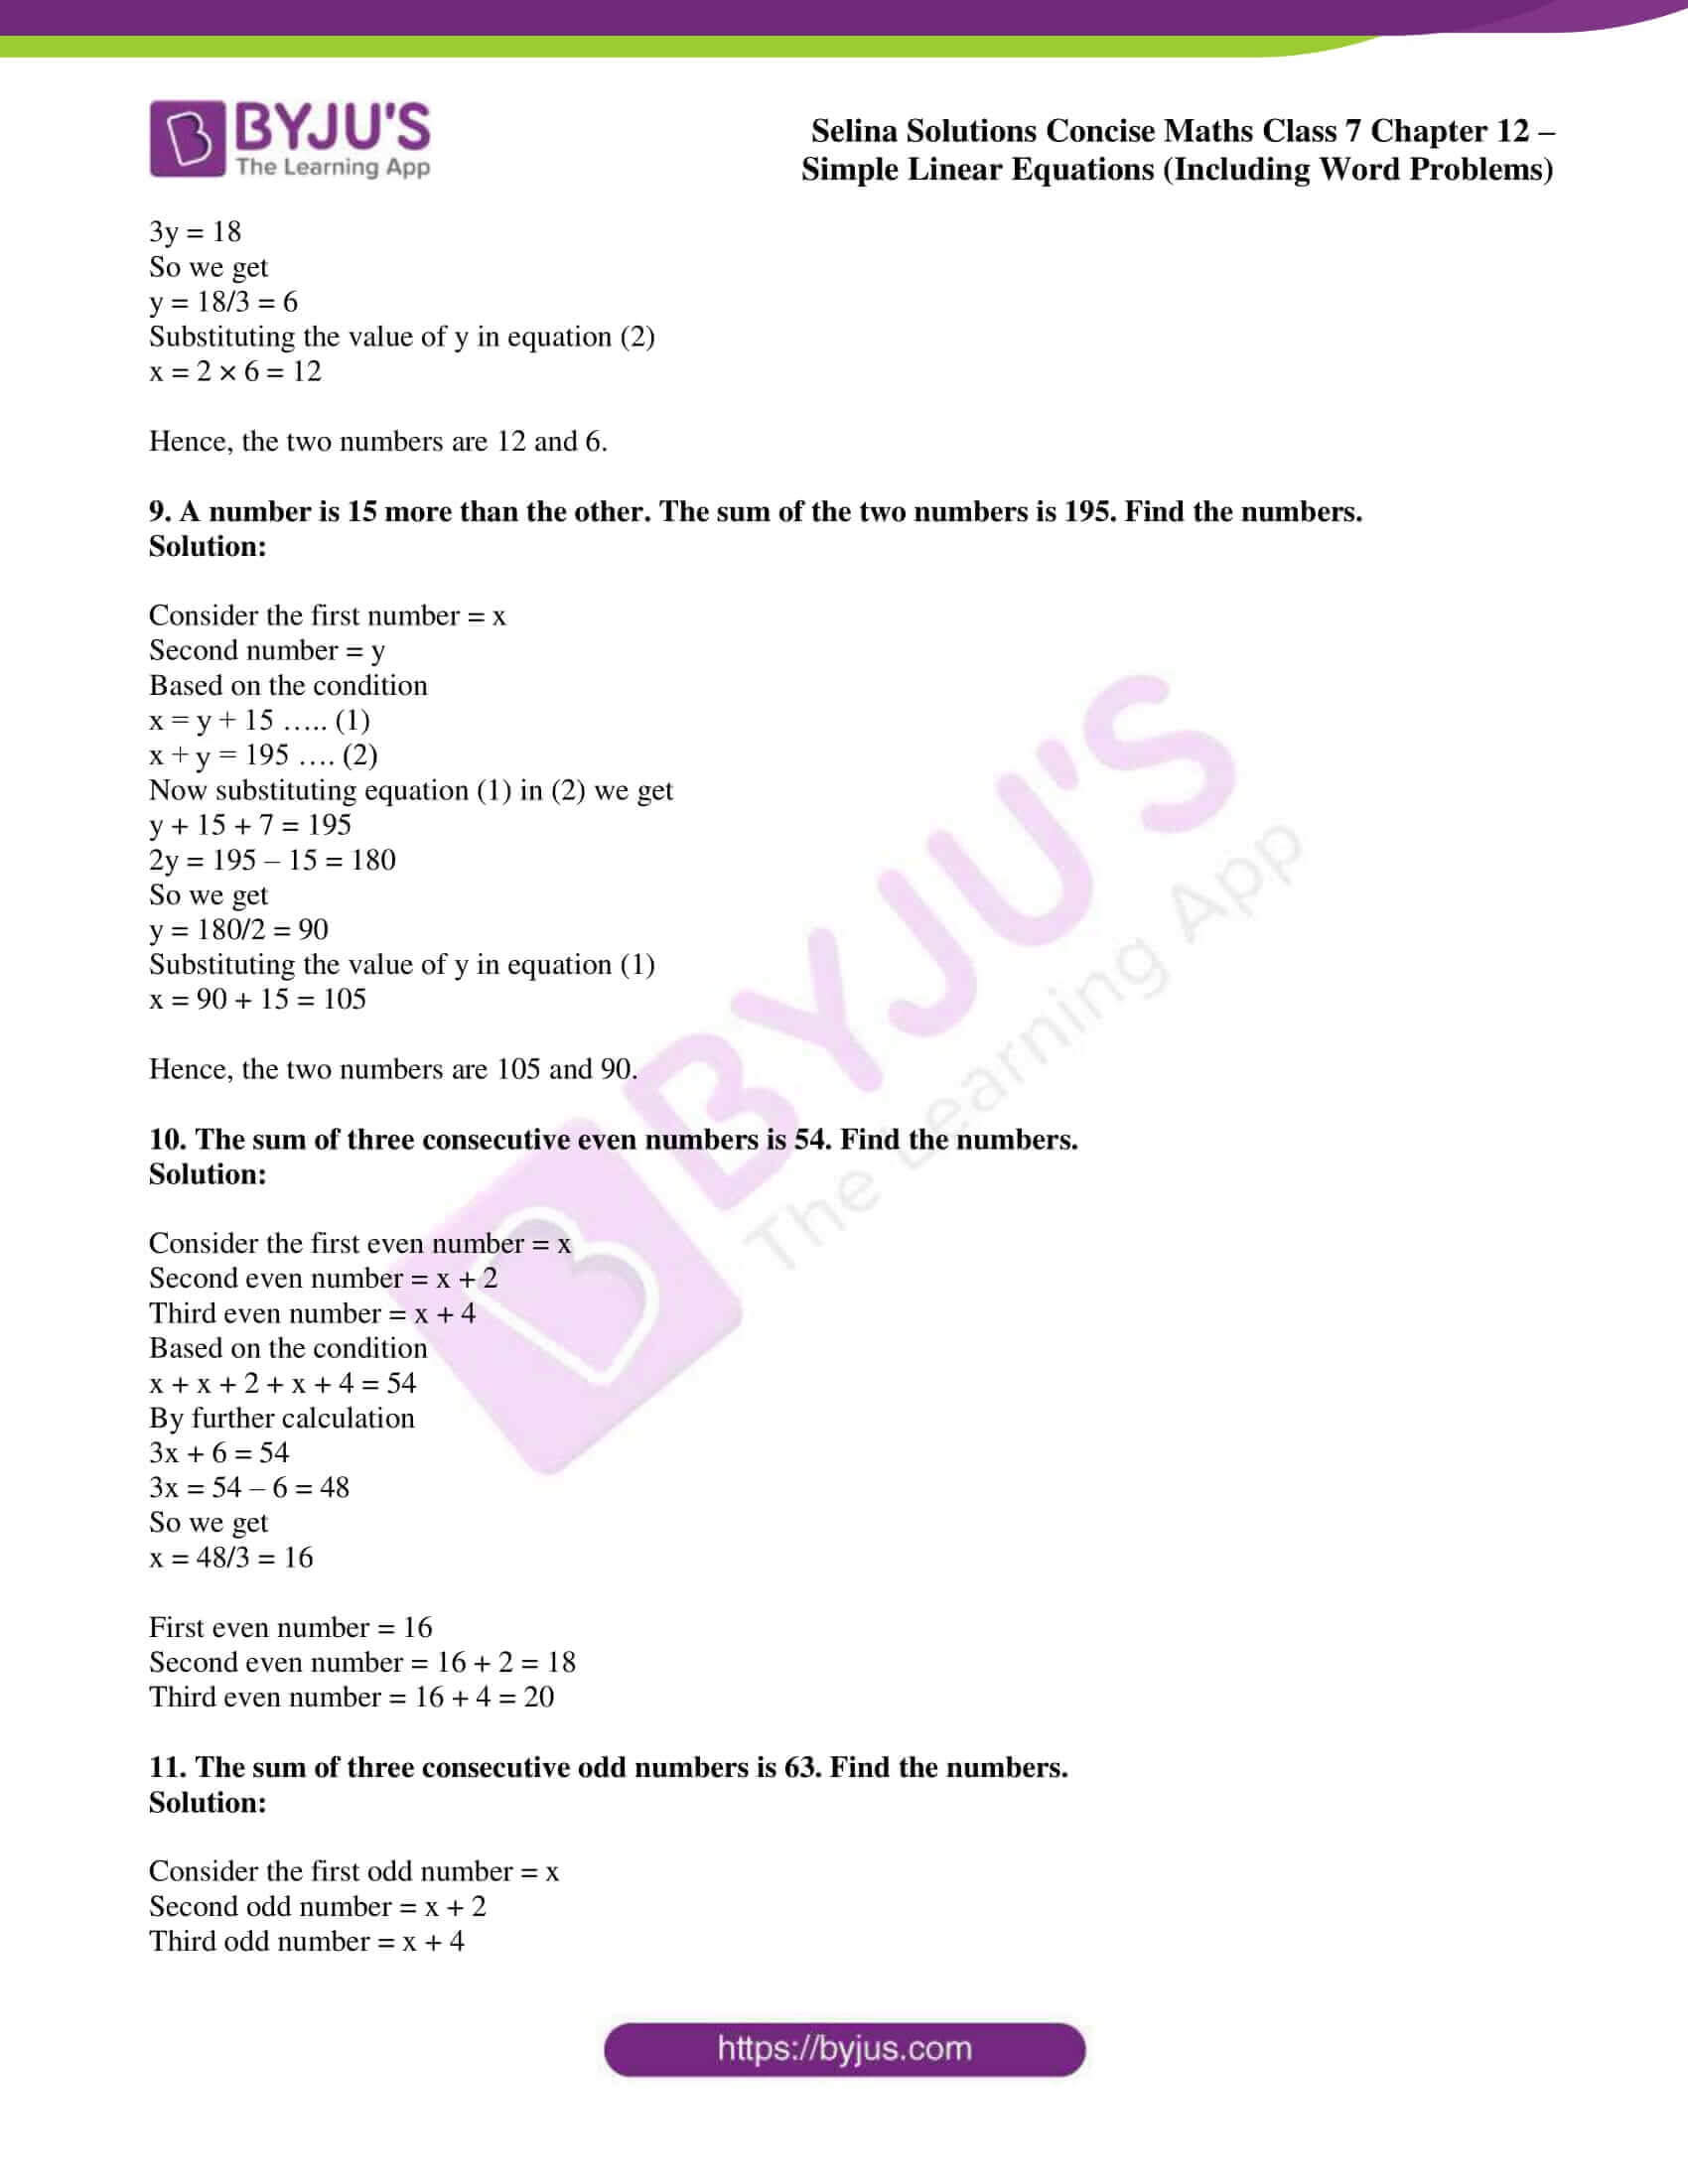 selina solution concise maths class 7 ch 12d 3